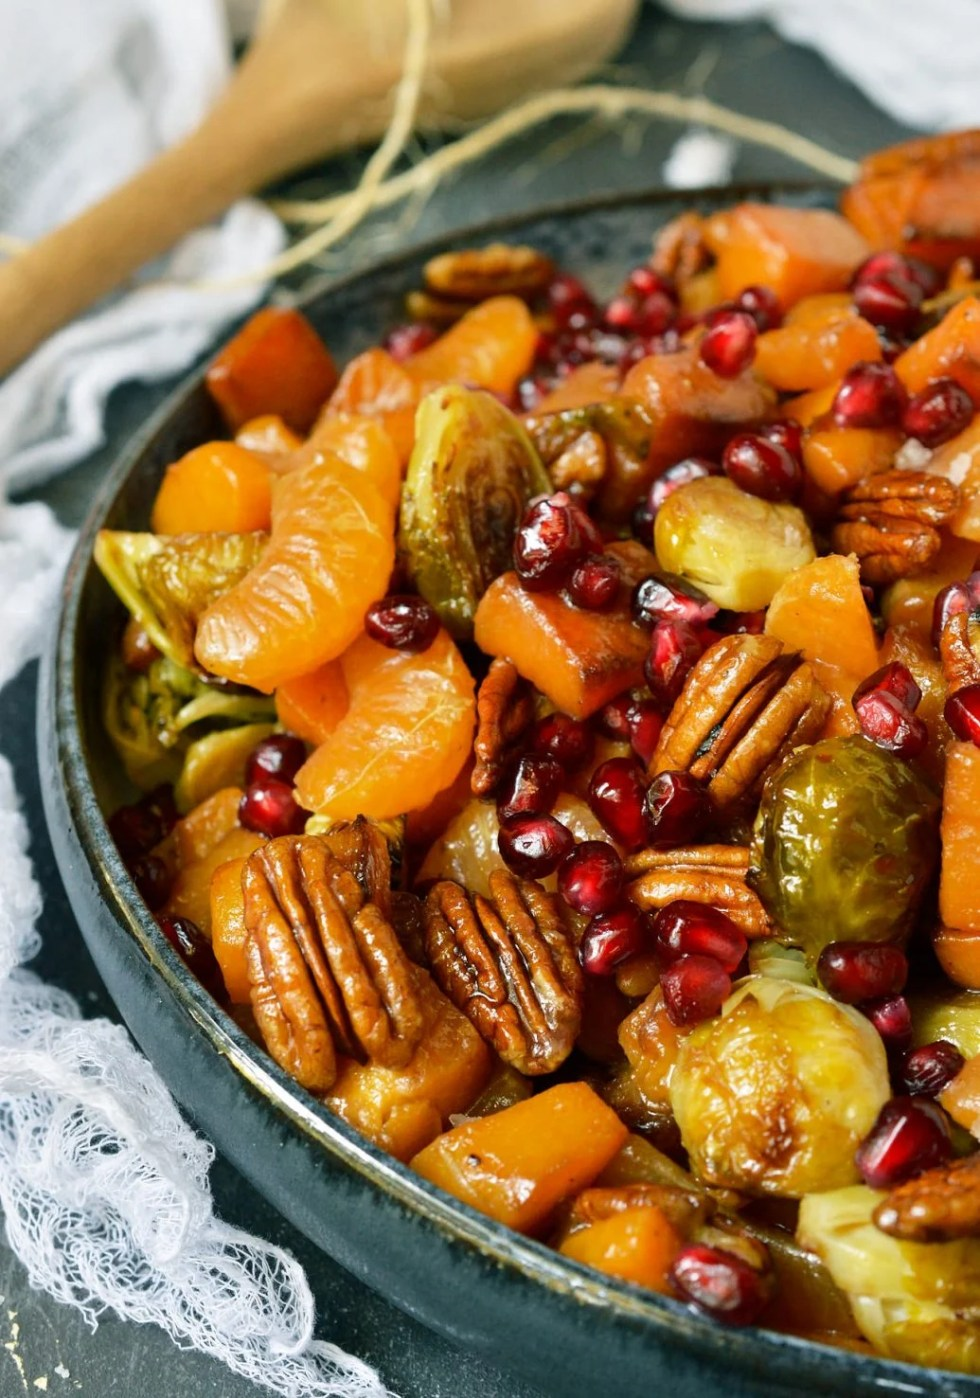 Enjoy a healthy bowl full of Winter fruits and vegetables. This Butternut Squash Salad has roasted butternut squash, brussels sprouts, pecans, mandarin oranges and pomegranate seeds. Add the balsamic dressing and you have the ultimate nutritious, flavorful side dish! This is a Vegan, Paleo recipe with Whole30 options. #paleodiet #paleo #whole30recipes #vegan #veganrecipes